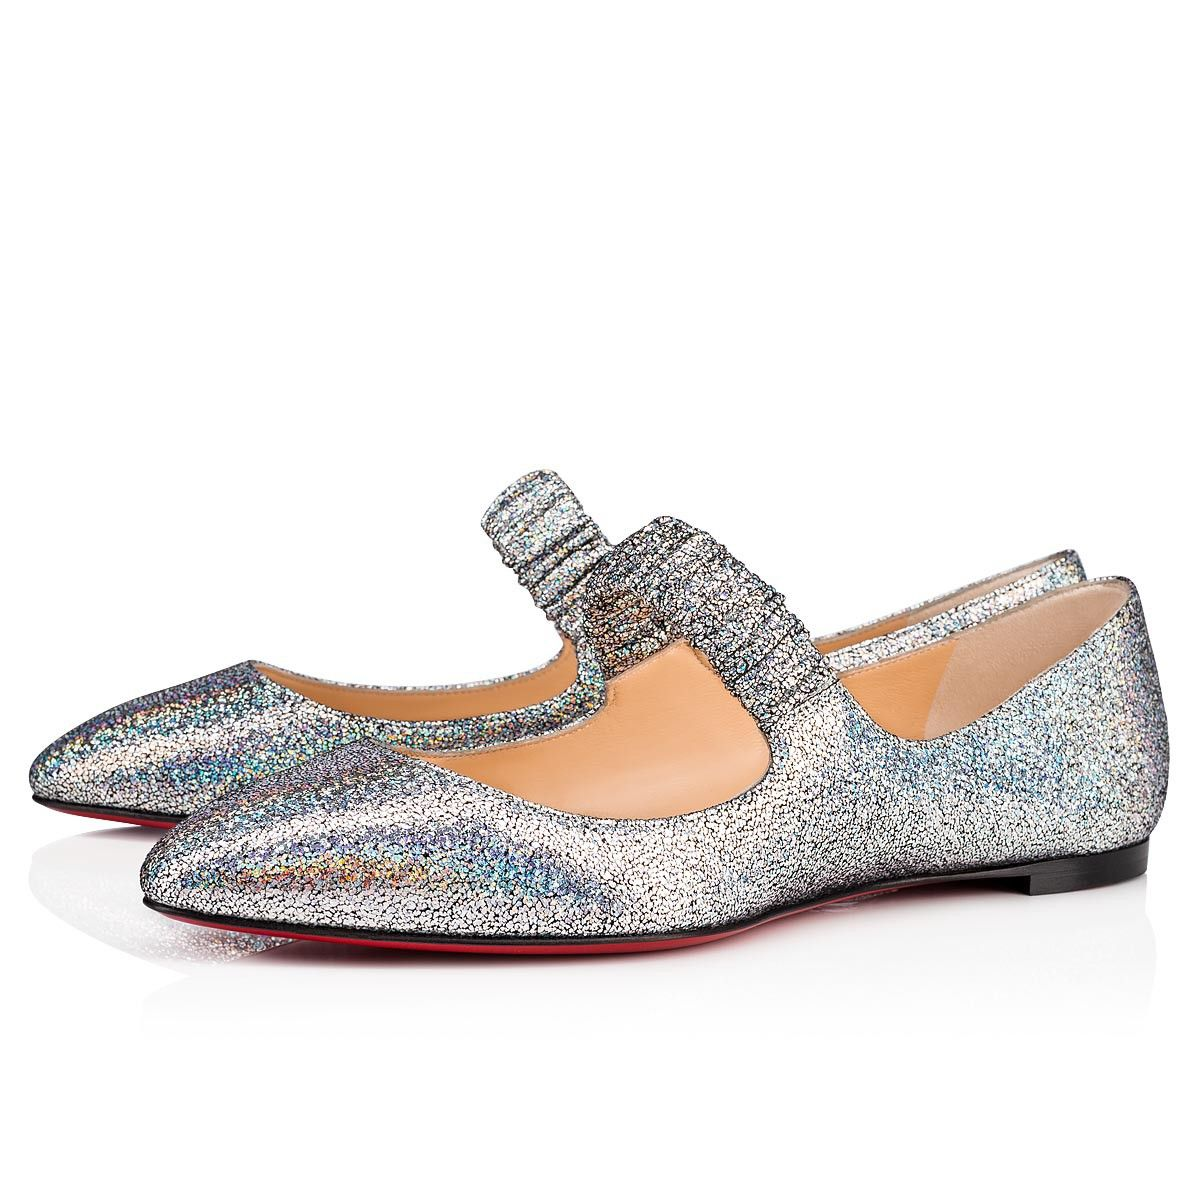 6fe9af455e0f Christian Louboutin United States Official Online Boutique - M A Gil Flat  Silver Nappa Mica available online. Discover more Women Shoes by Christian  ...